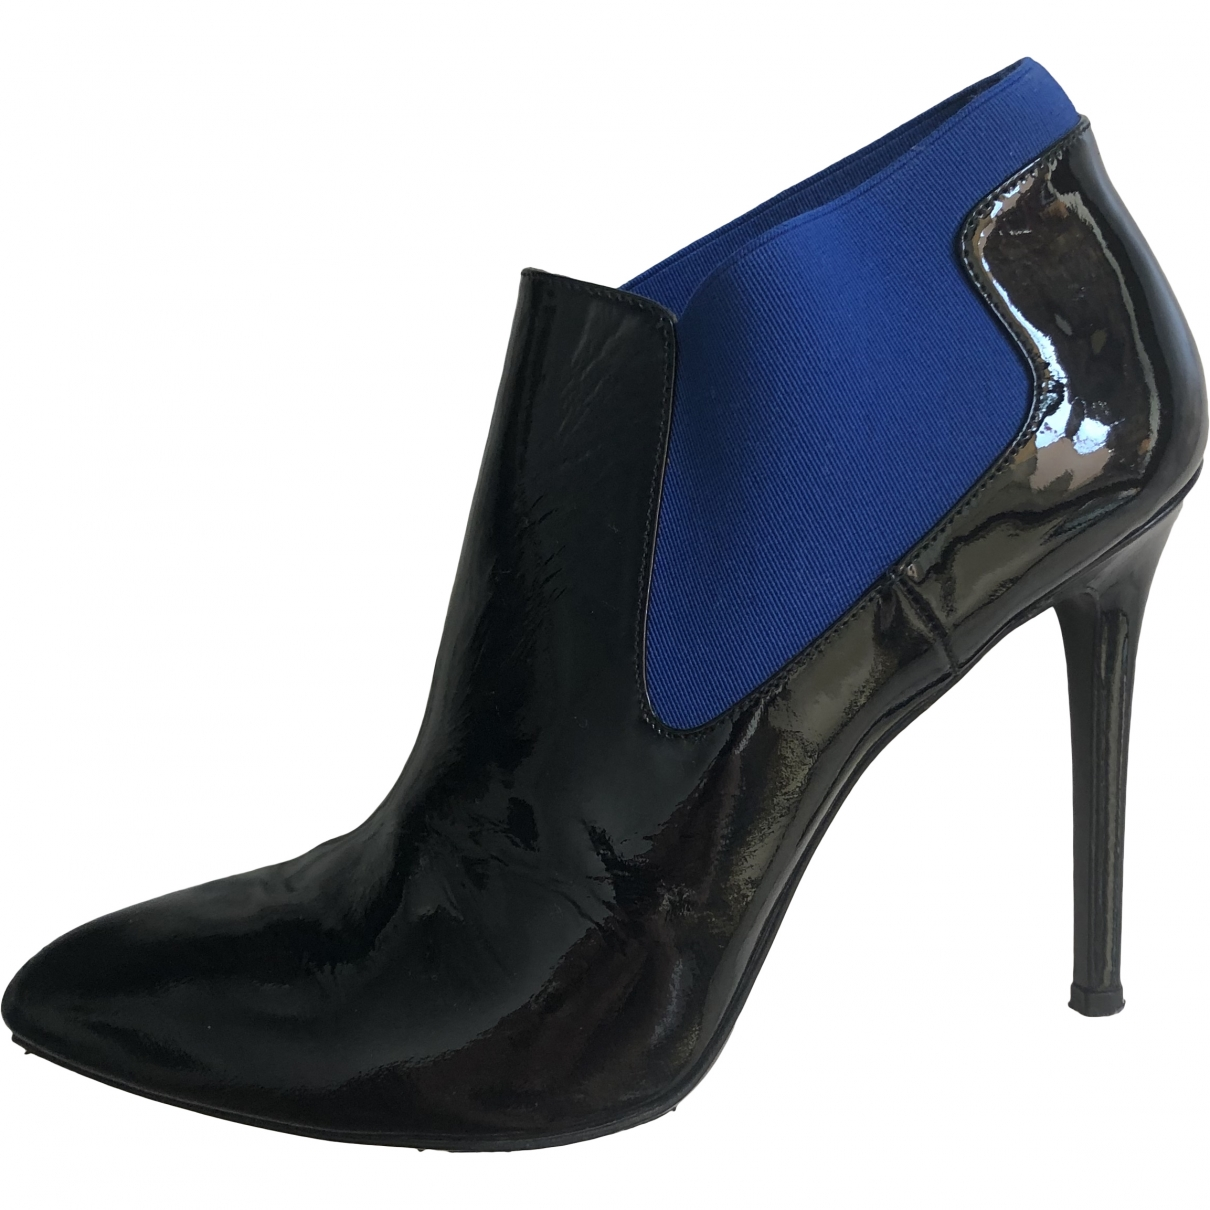 Alberto Guardiani \N Black Patent leather Ankle boots for Women 40 EU